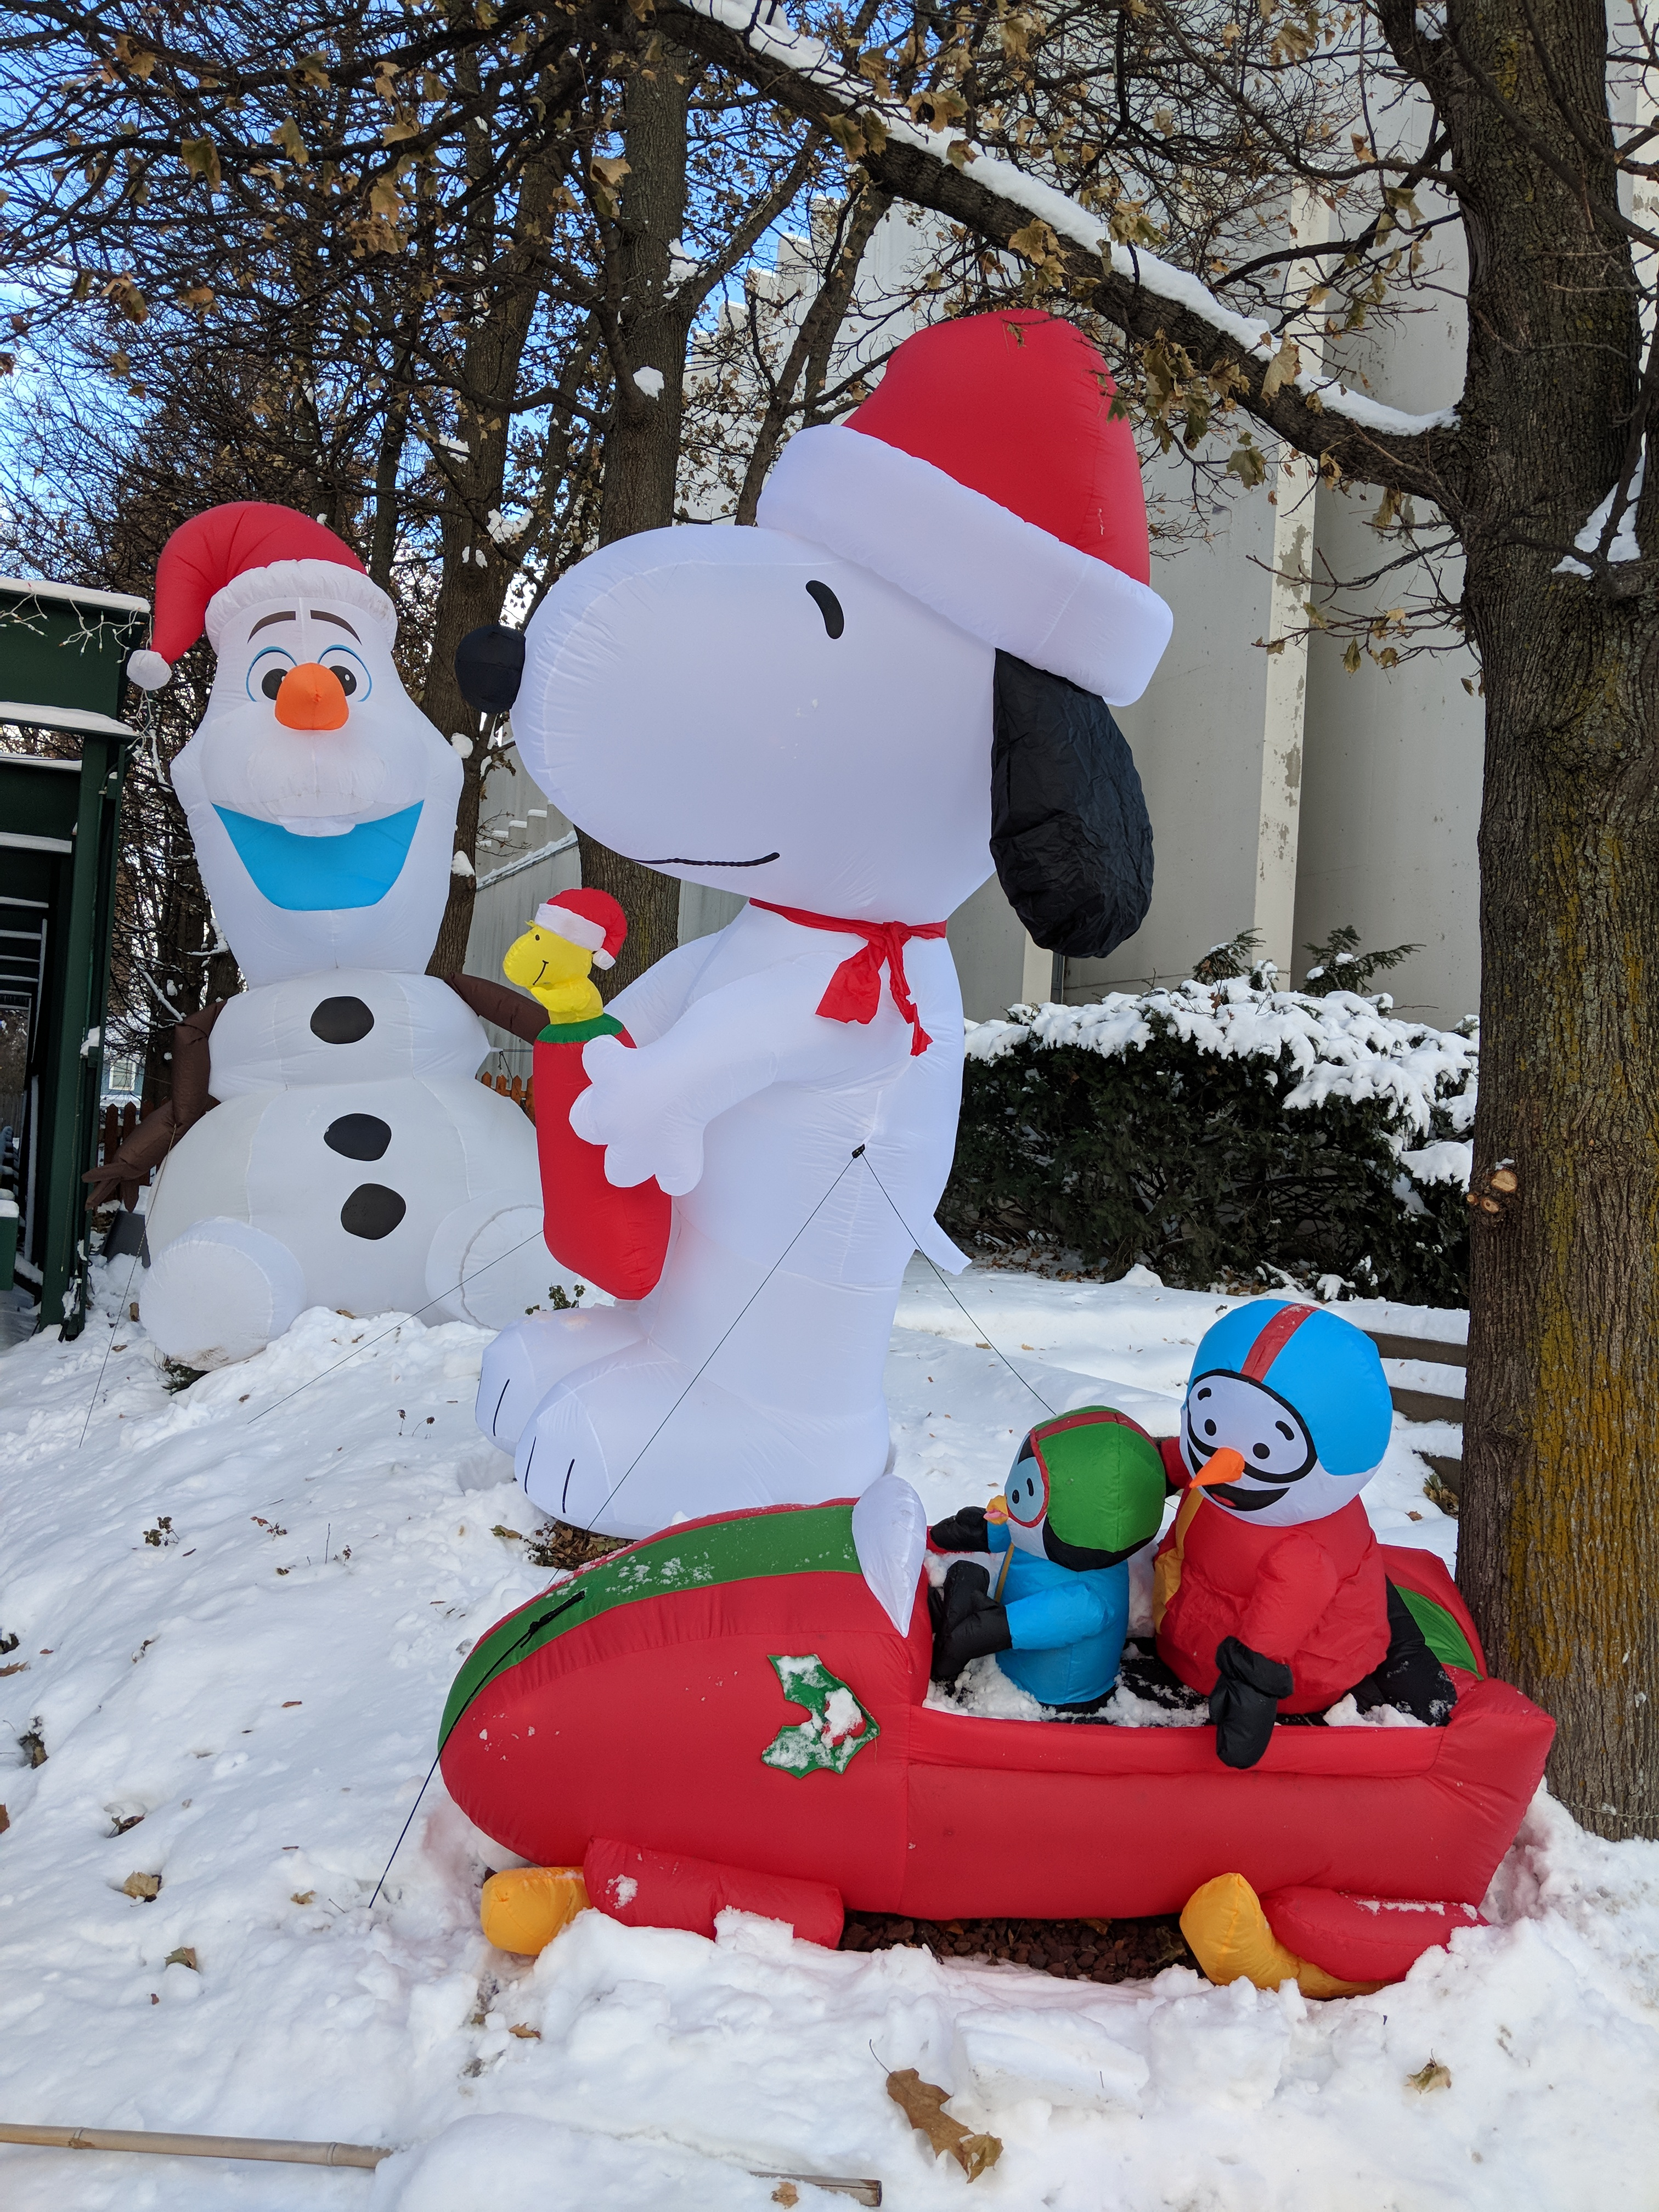 B&B front Giant Snoopy blowup winter 2017